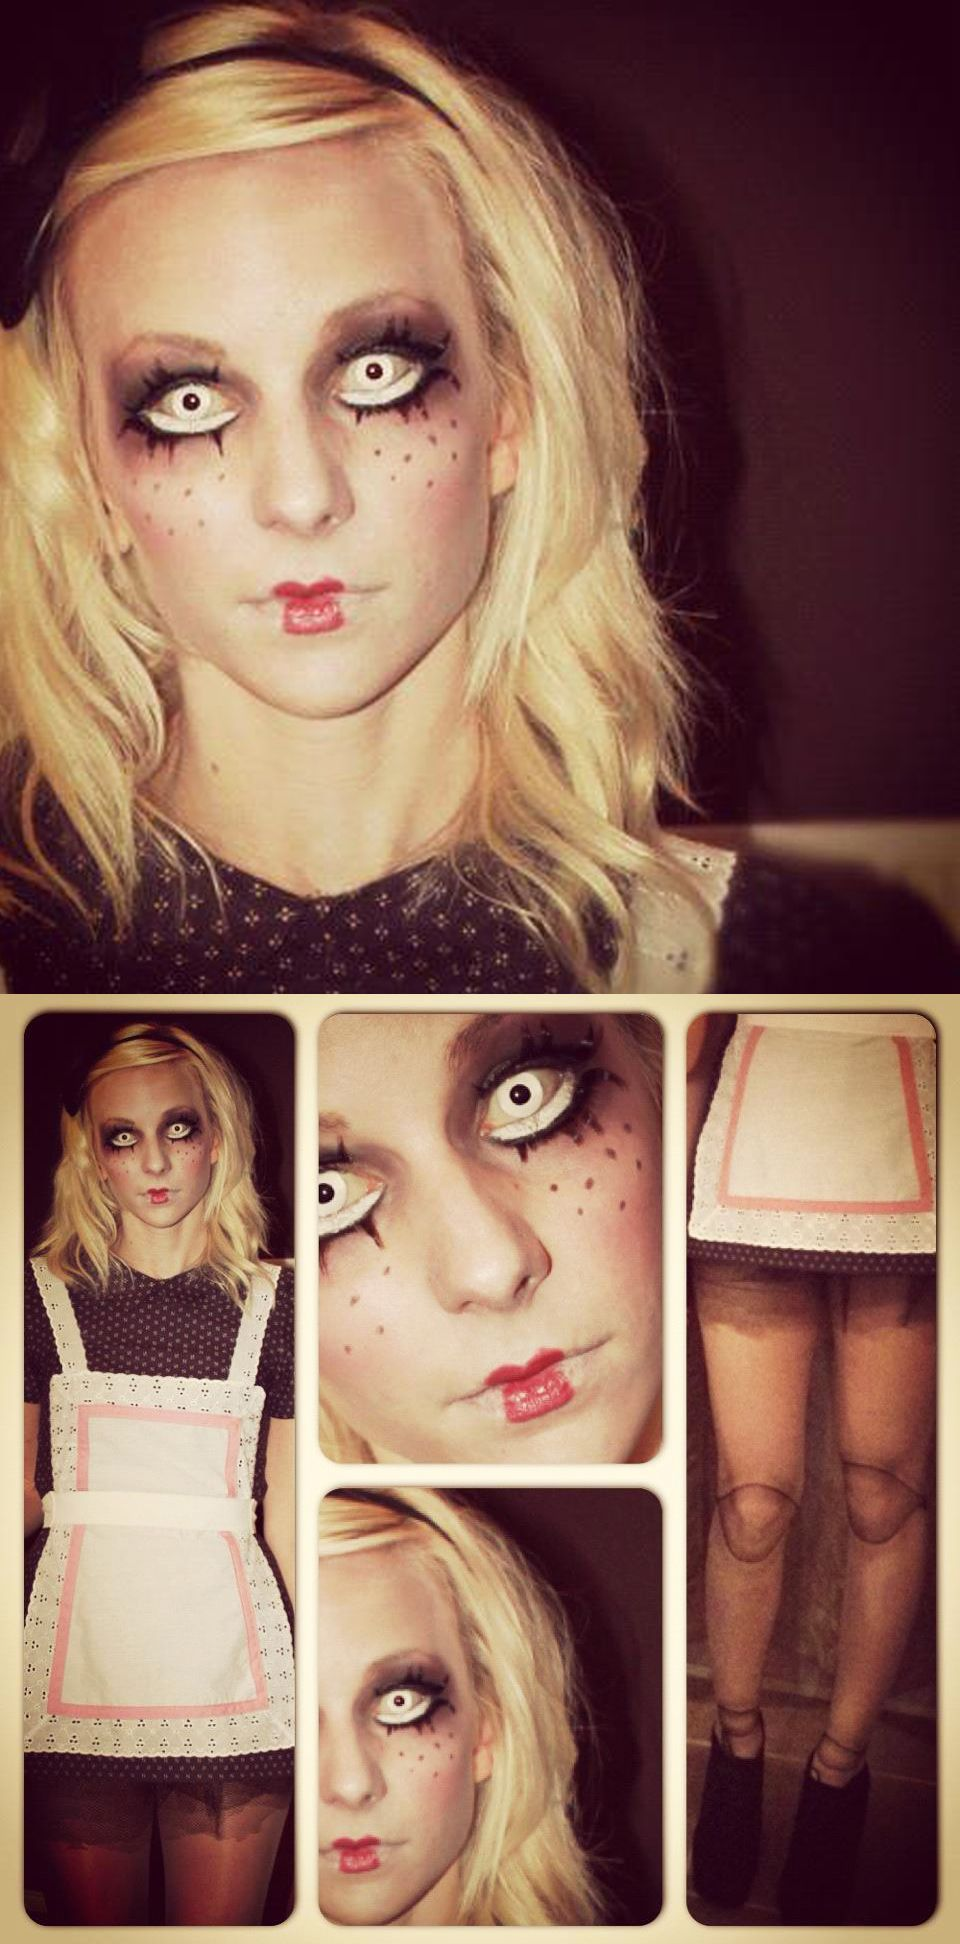 Wonderful Creepy Doll Halloween Costume. Handmade Outfit, Doll Leg Tights And Makeup.